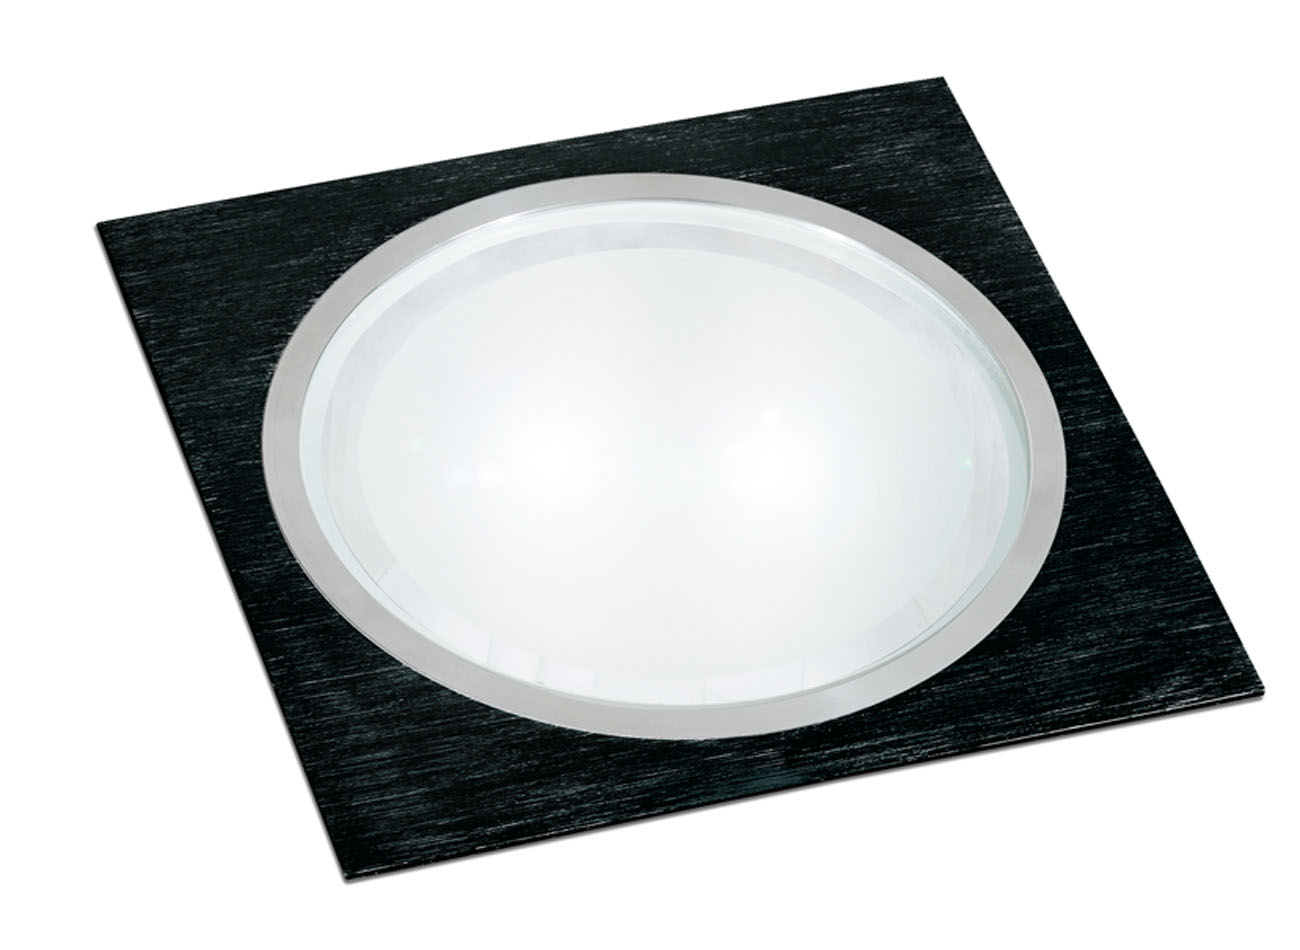 bpm lighting 3078 downlight square 2x26w g24q 3 3078. Black Bedroom Furniture Sets. Home Design Ideas